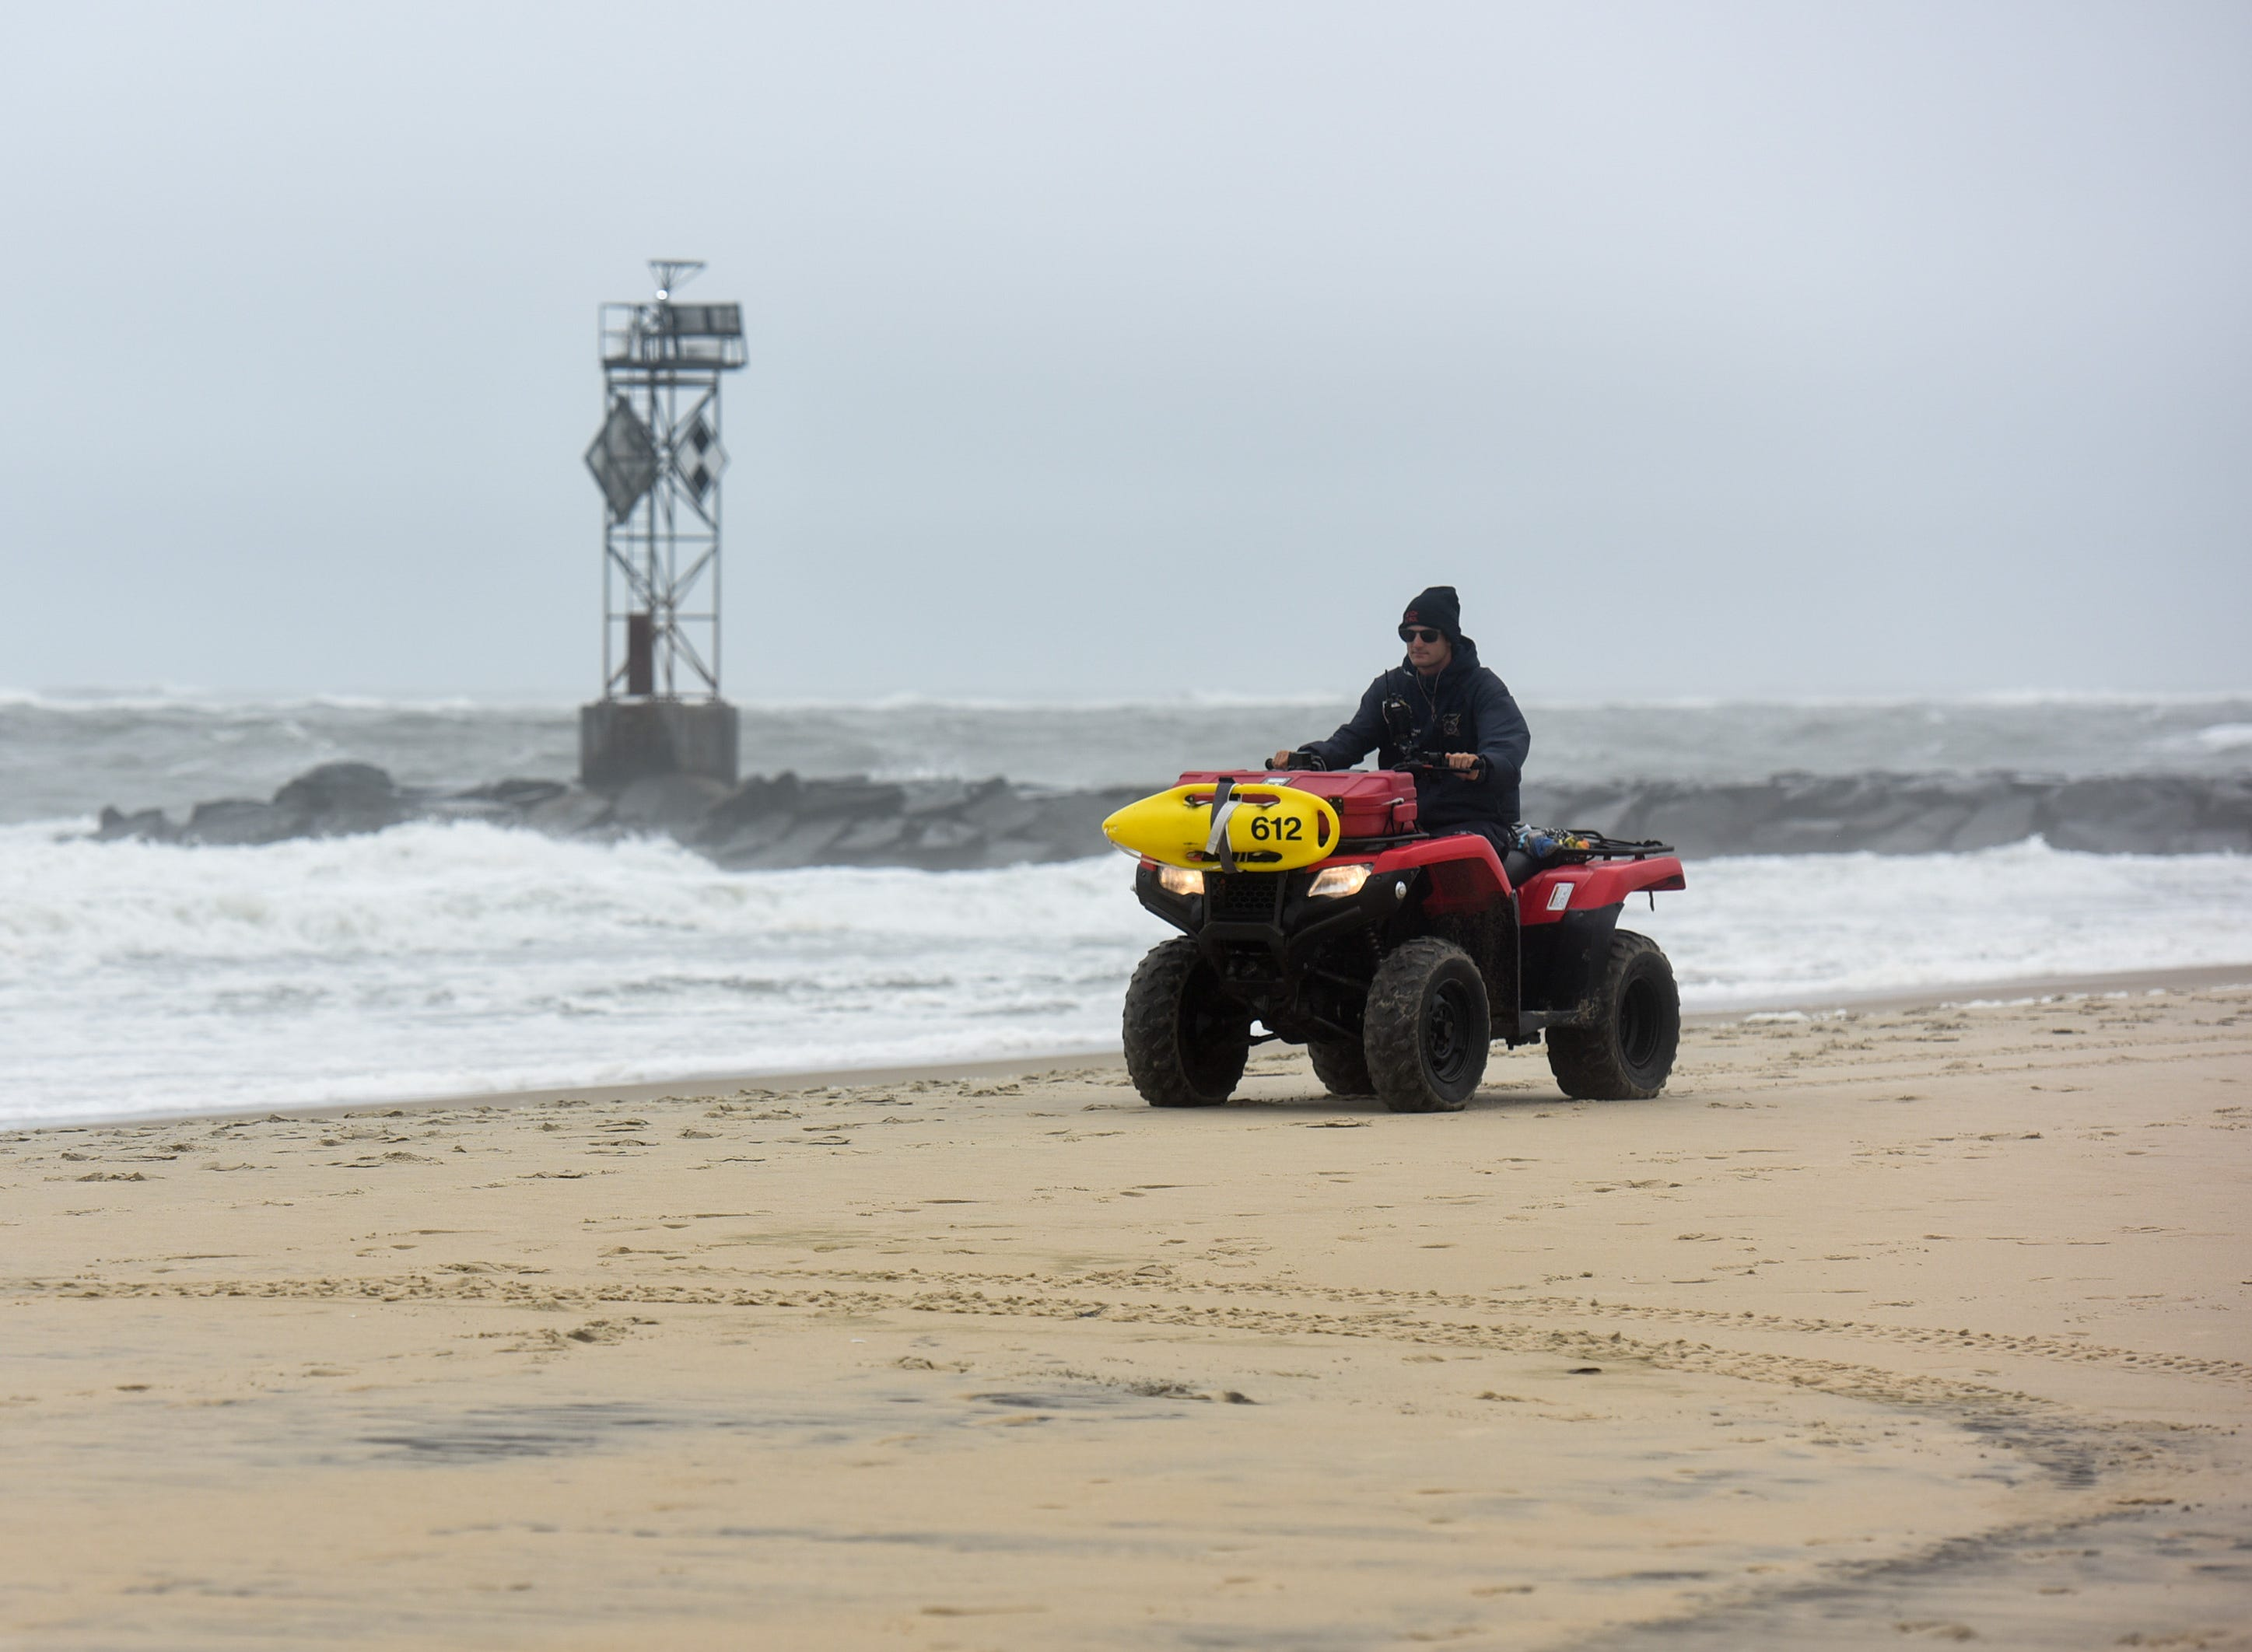 A lifeguard drives across the beach in Ocean City. The area saw mild flooding, wind and rough surf on Thursday, Sept 13.